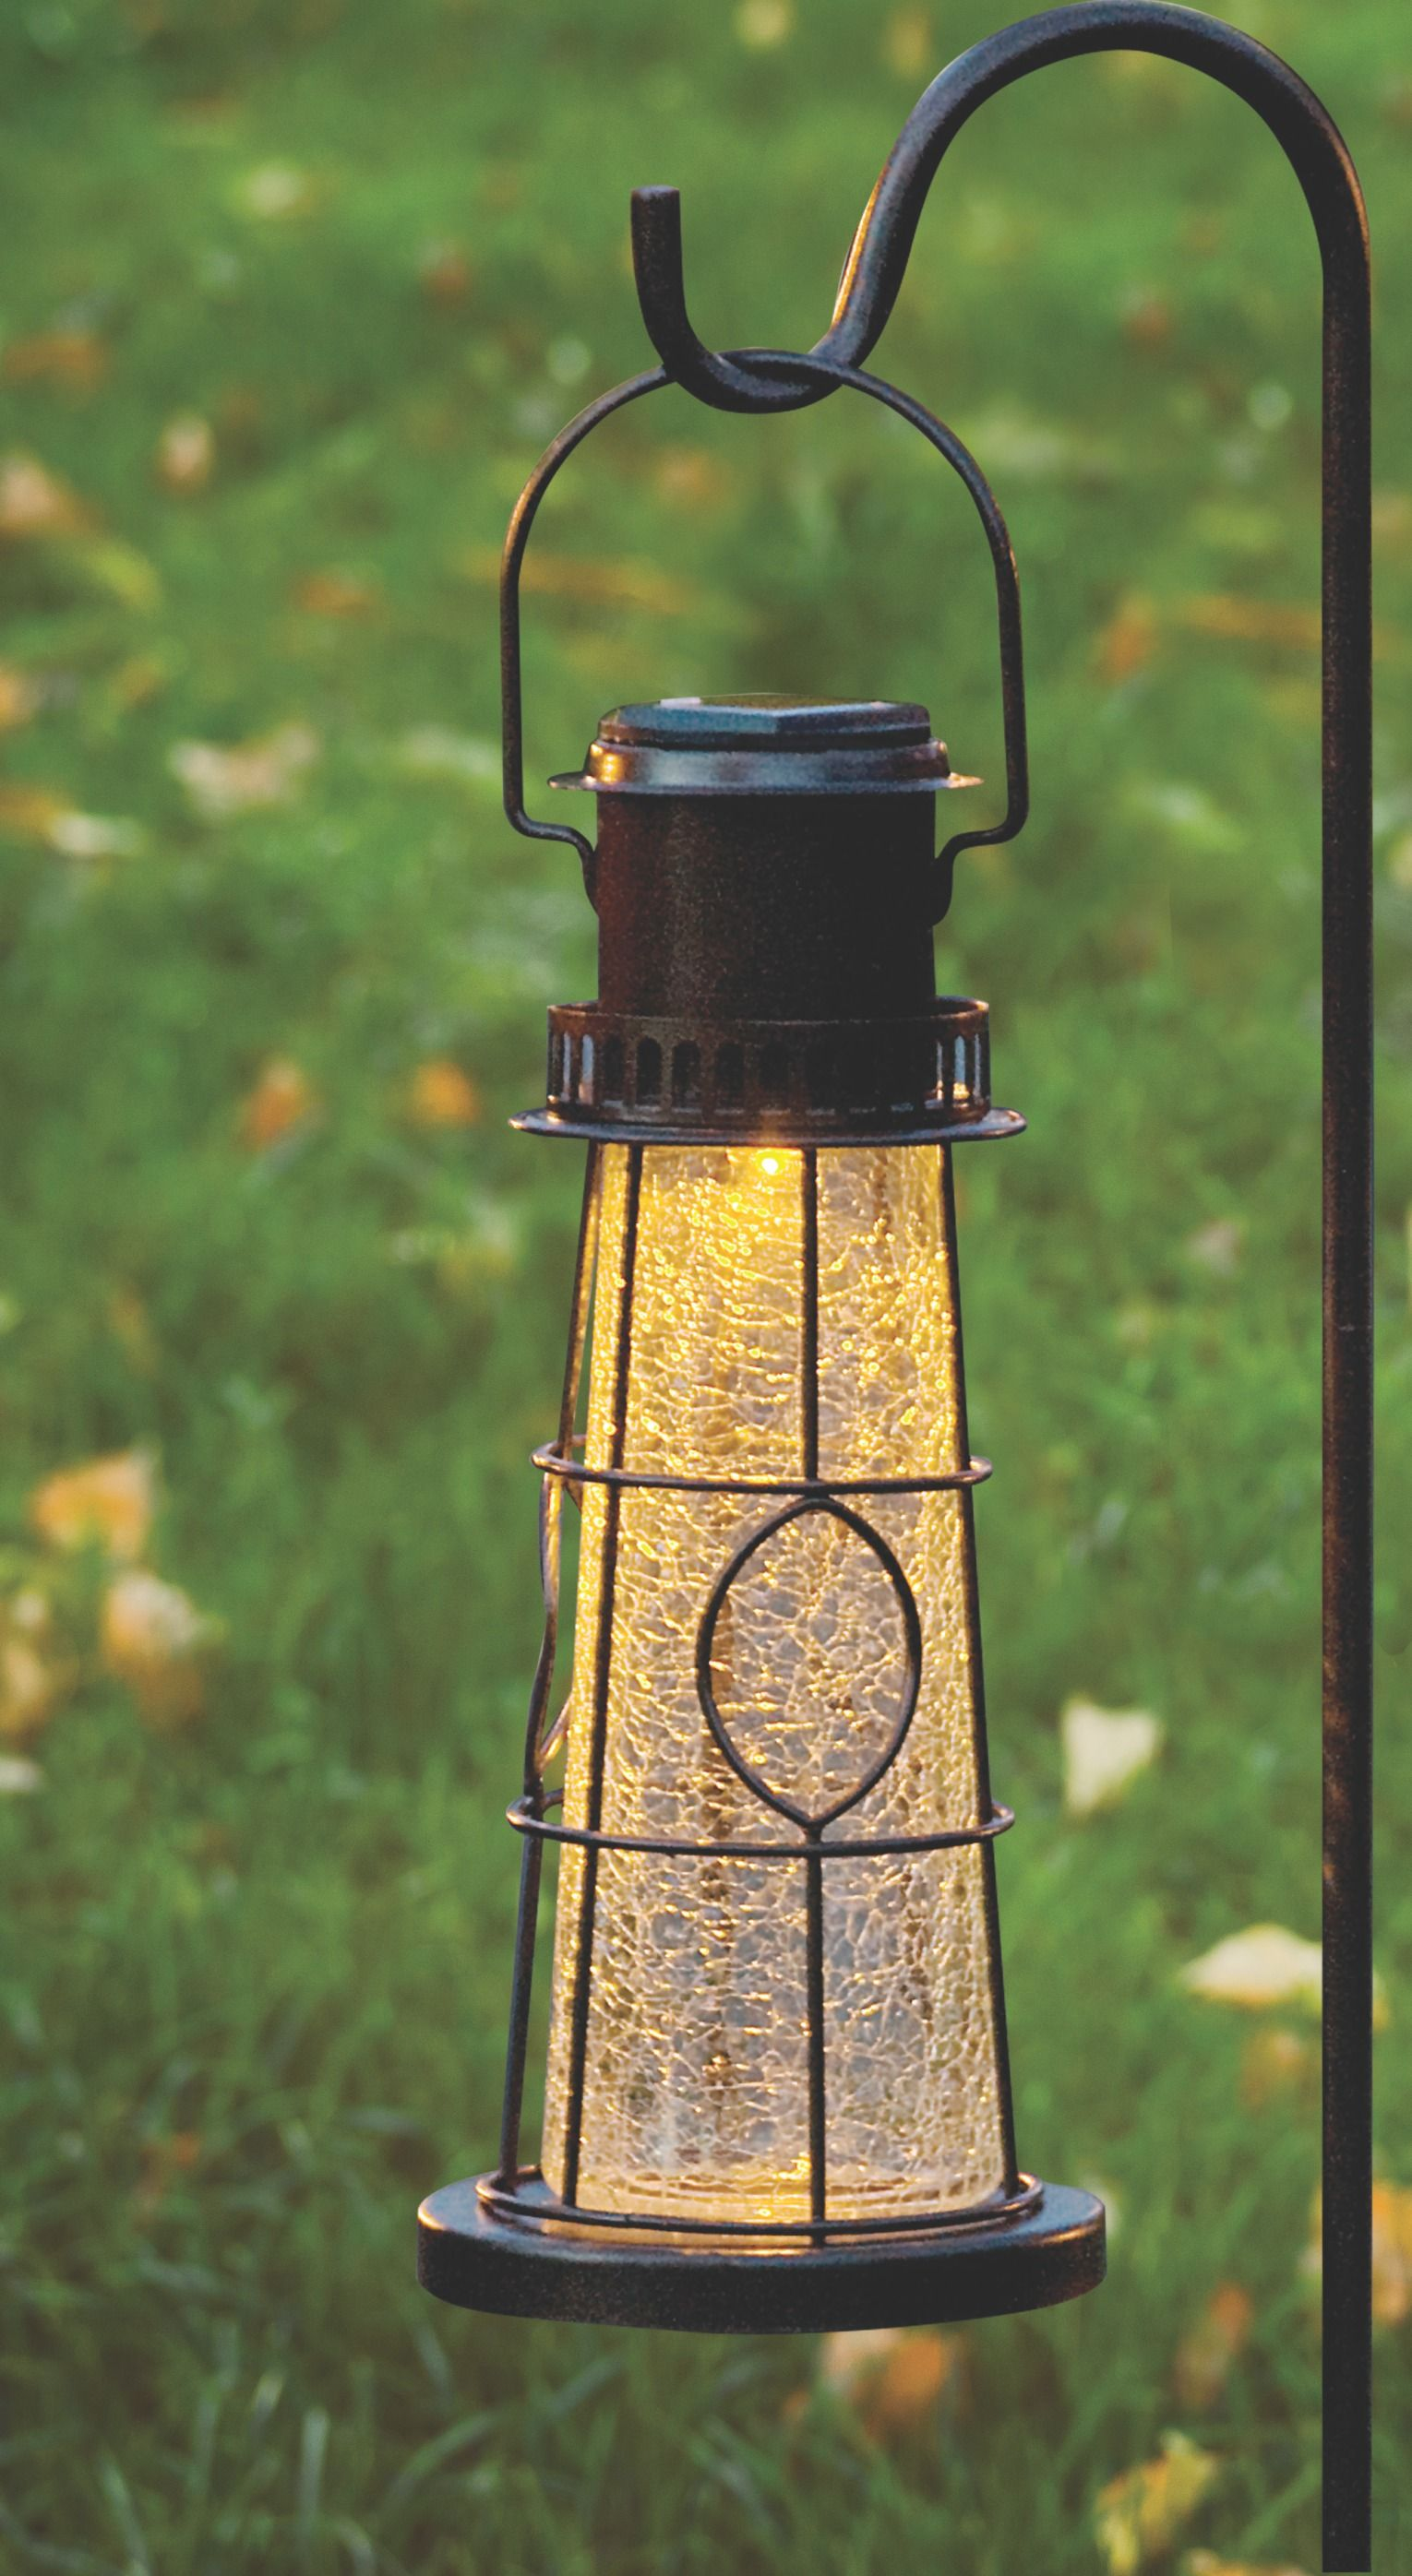 Light The Way Resembling Look Of A Lighthouse This Hanging Solar Will Illuminate Your Yard With Its Color Changing Led Bulb